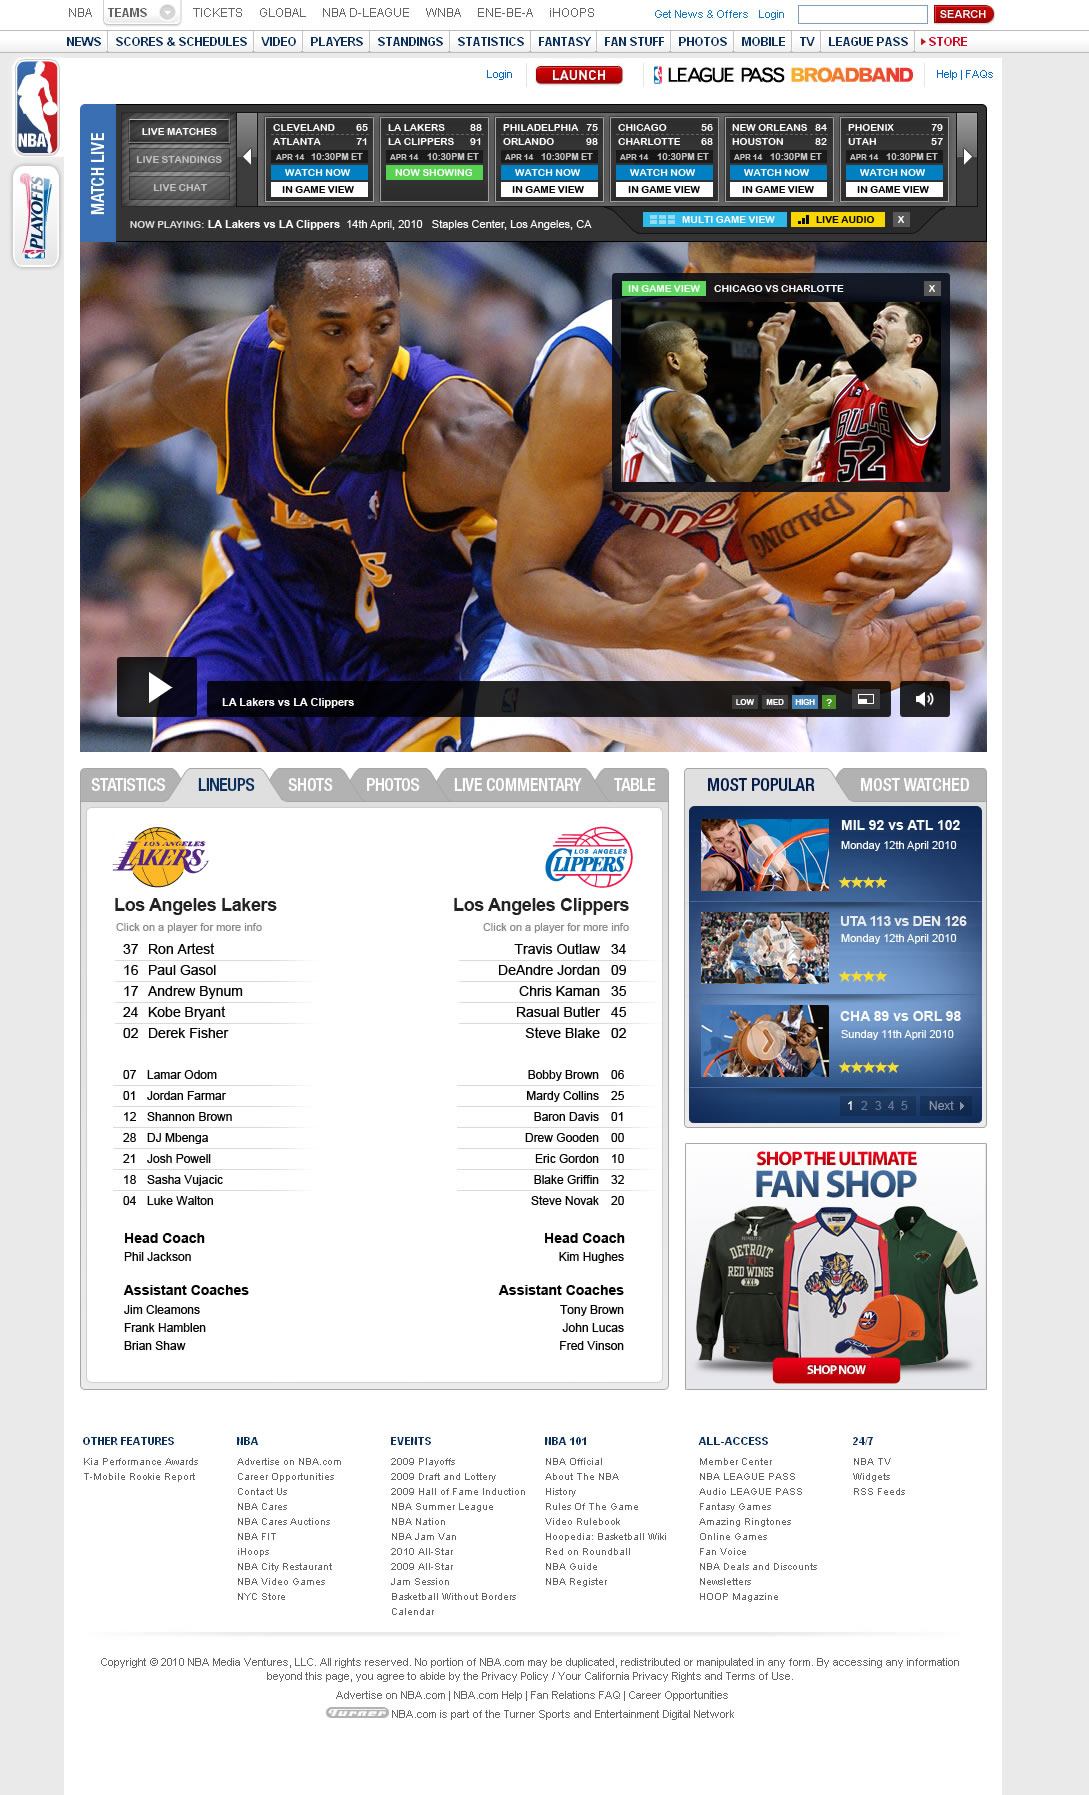 NBA_live_pitch_in_game